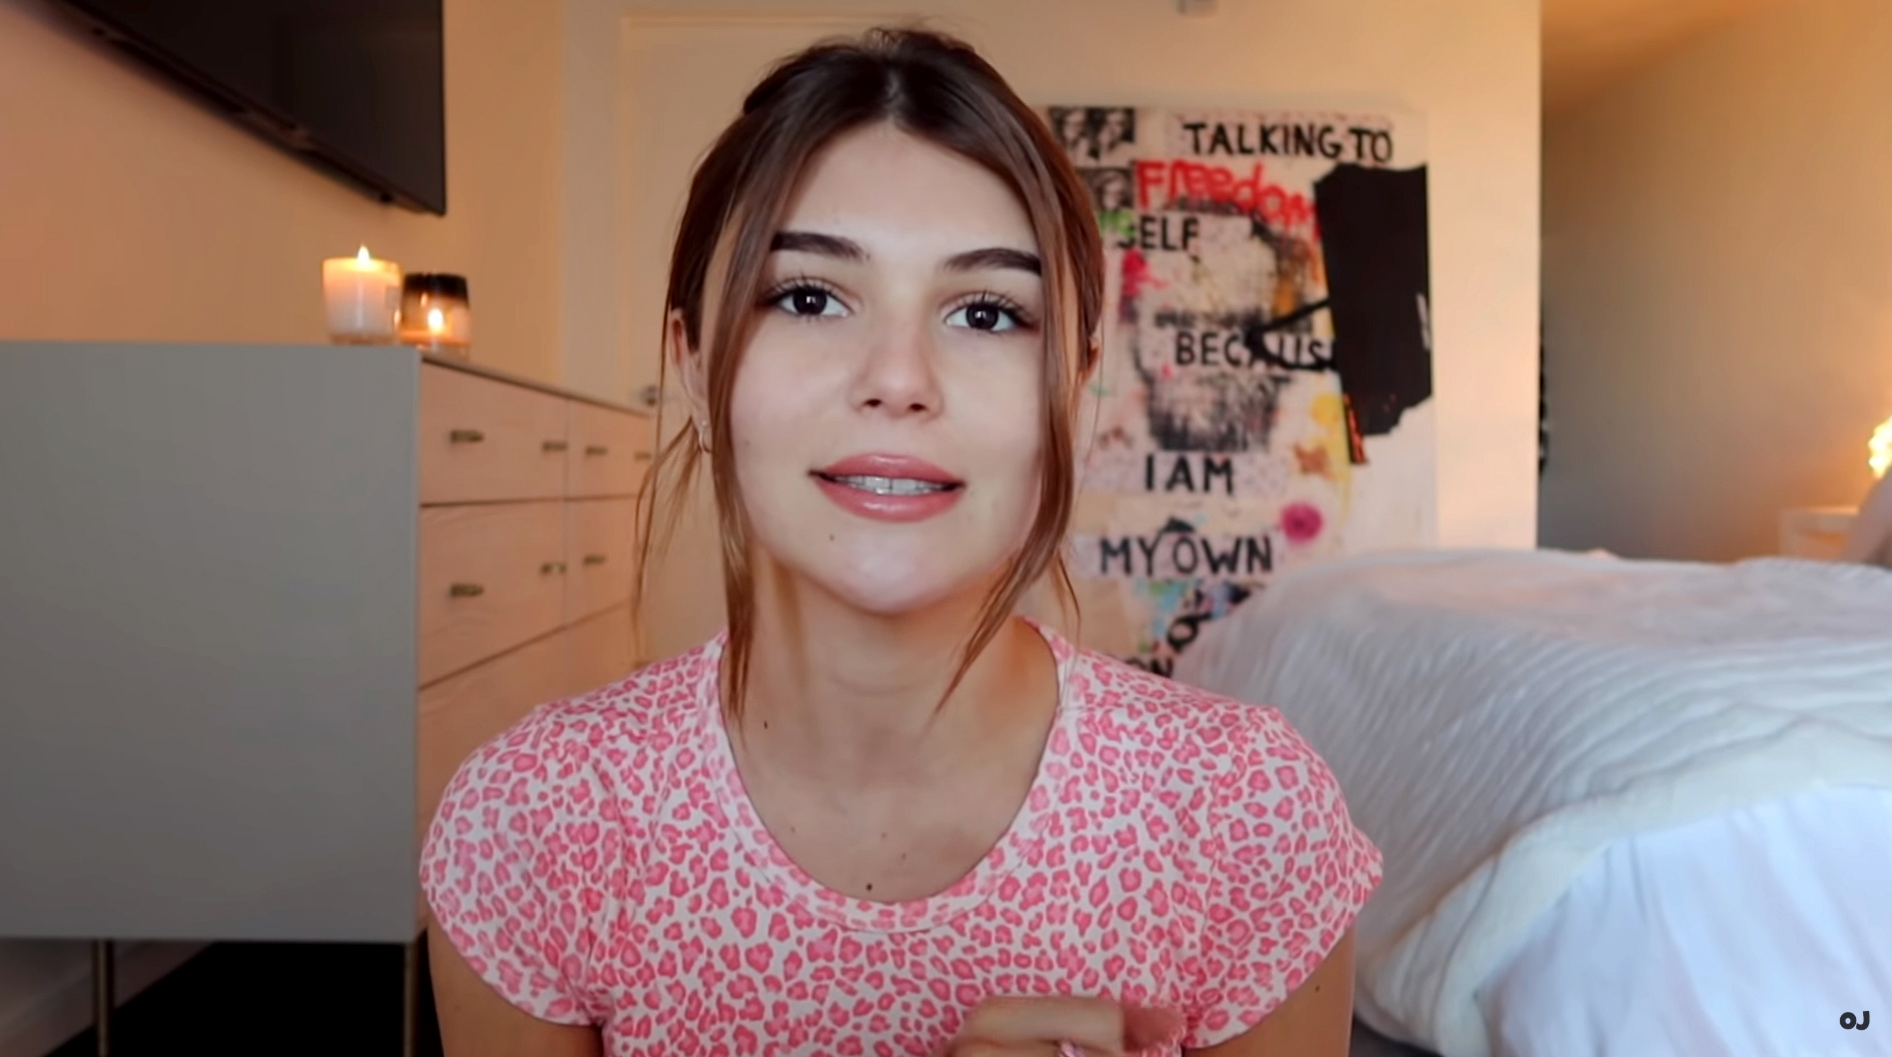 Lori Loughlin S Daughter Olivia Jade Returns To Youtube Amid College Admissions Scandal